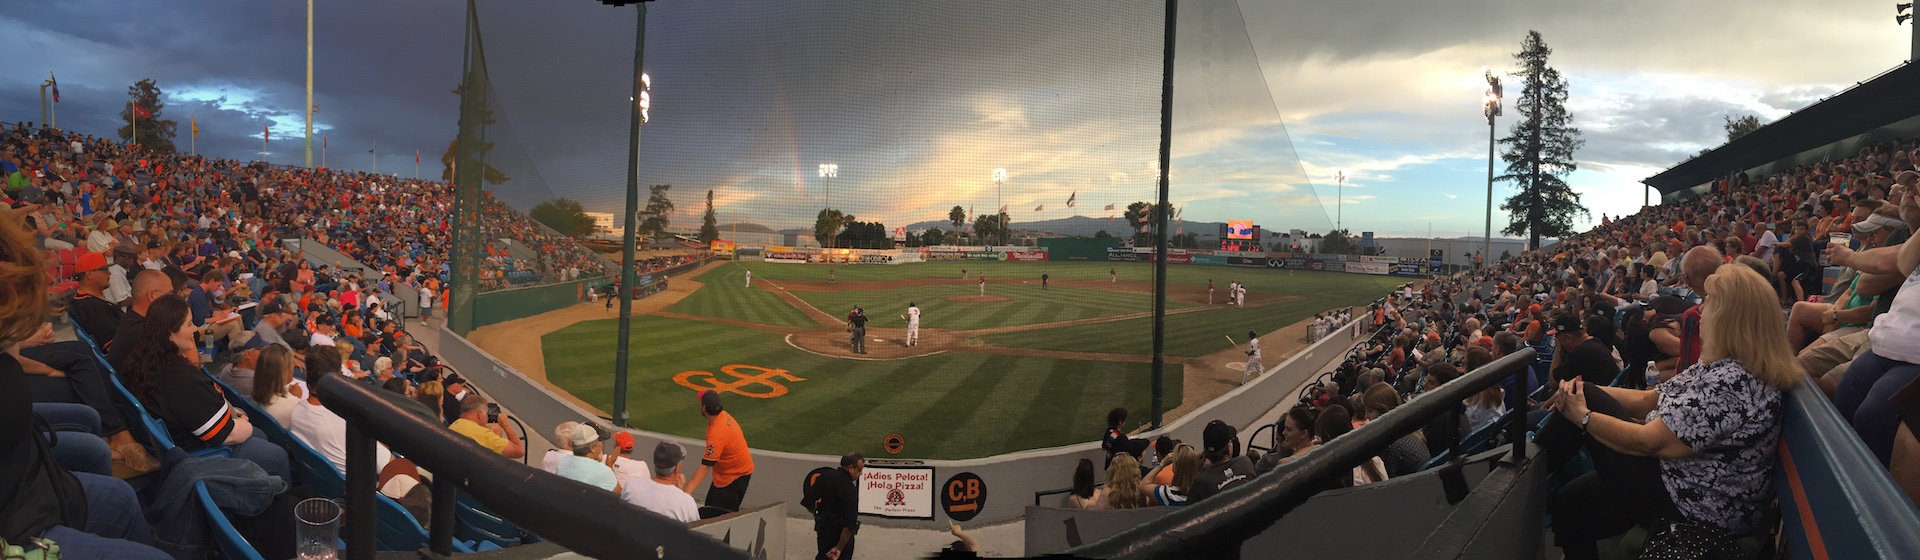 San Jose Giants Baseball Night